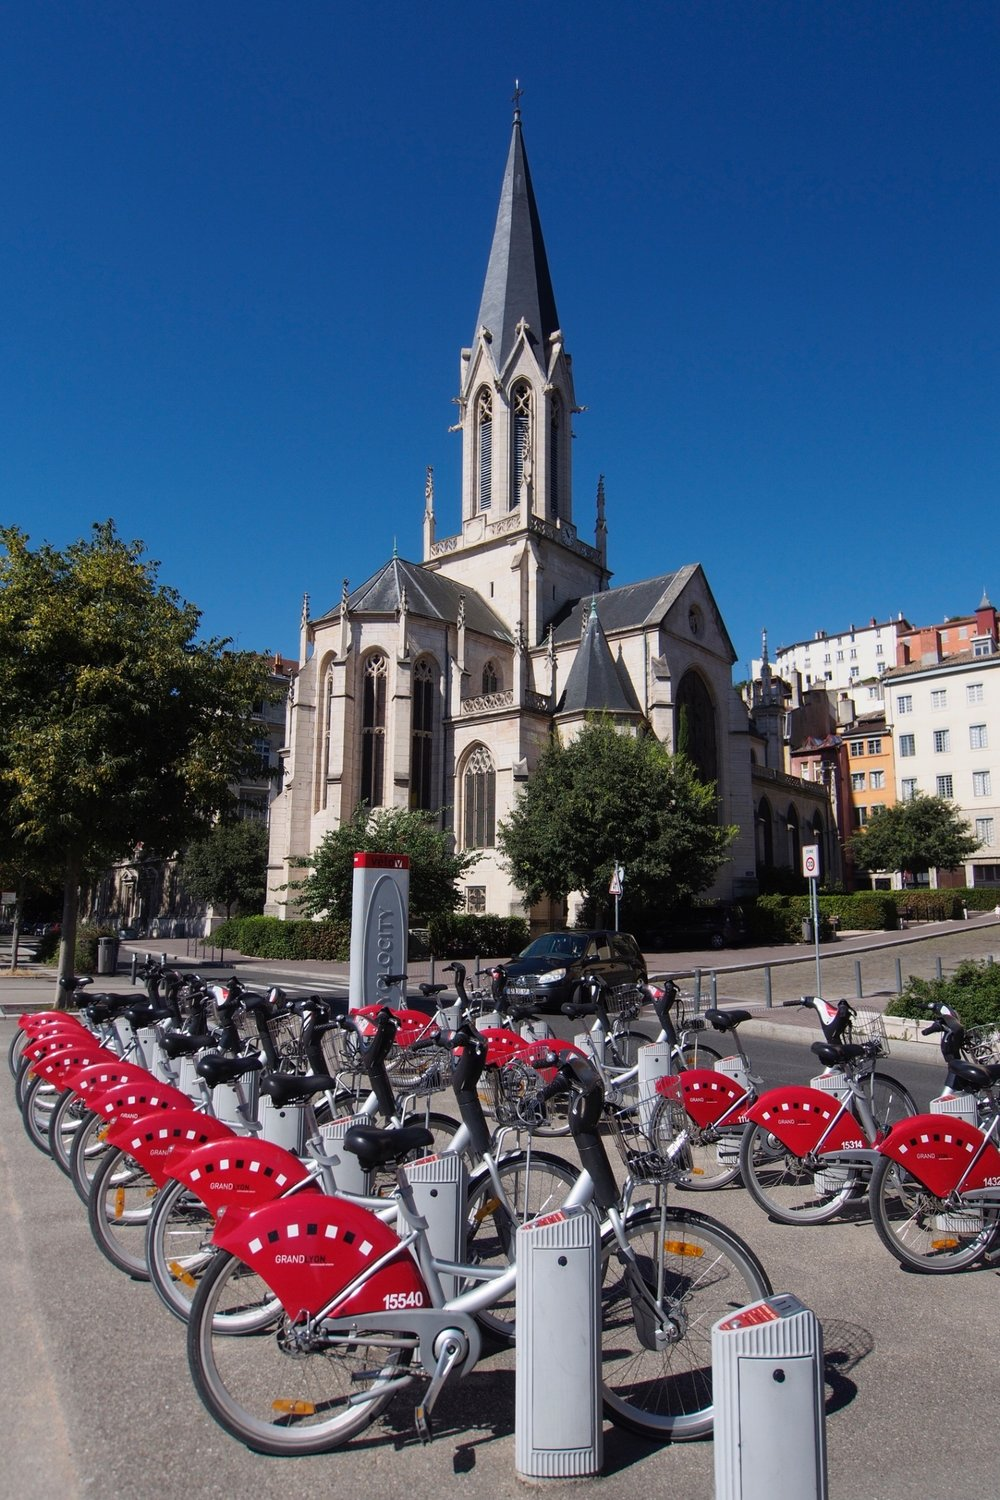 The city has a great cycling infrastructiure, including pleanty of bike lanes and a bike-share.